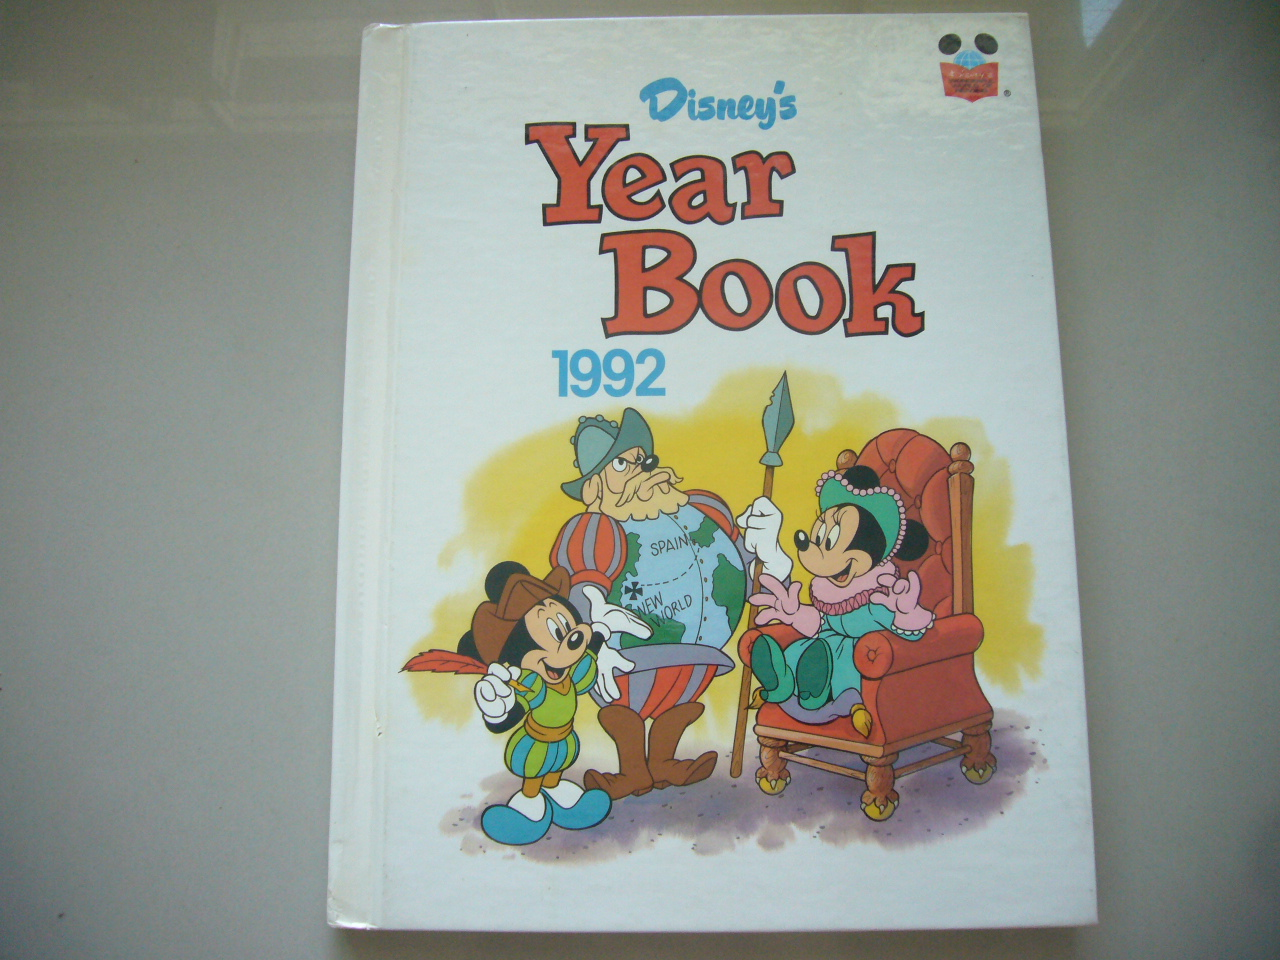 Disney's Year Book 1992